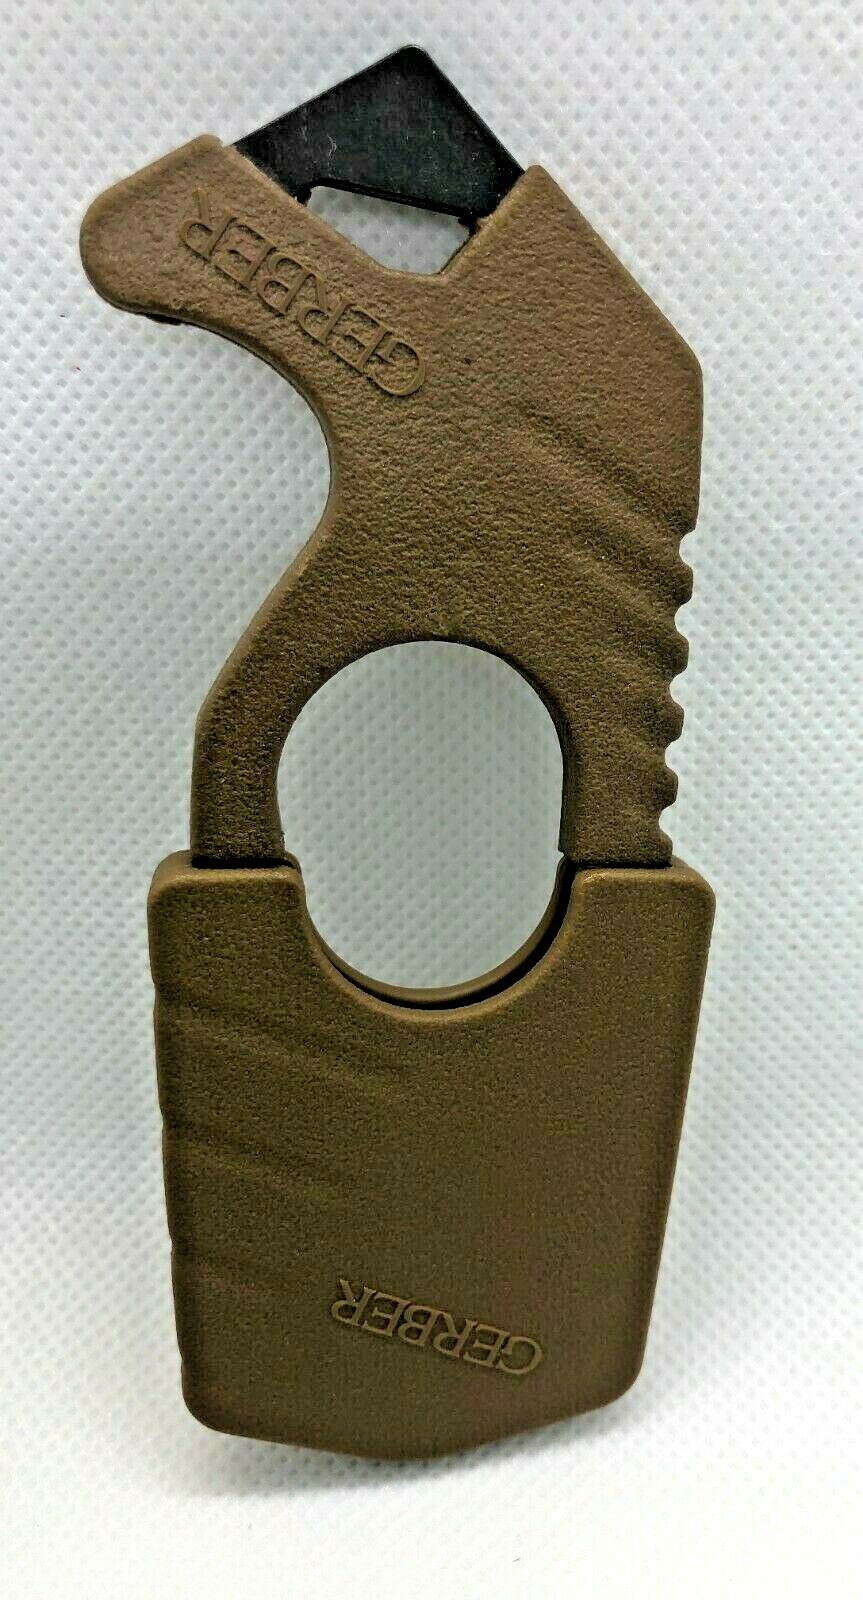 Gerber Strap or Seat Belt Cutter